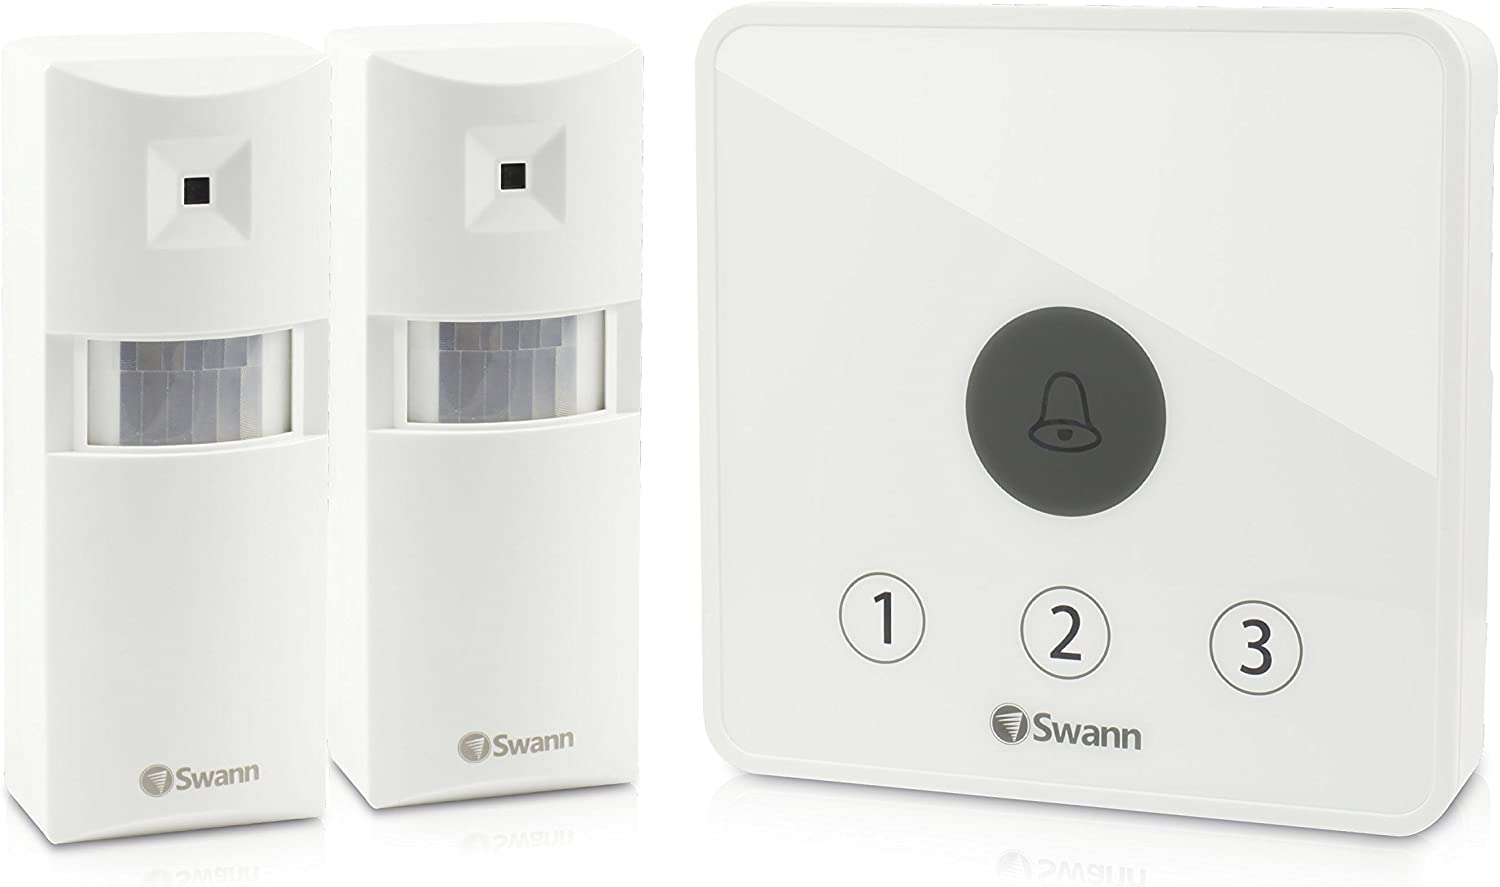 Swann Motion Sensor Alarm, Wireless Home Security PIR Motion Detect Door Alert Kit, Indoor and Outdoor Use